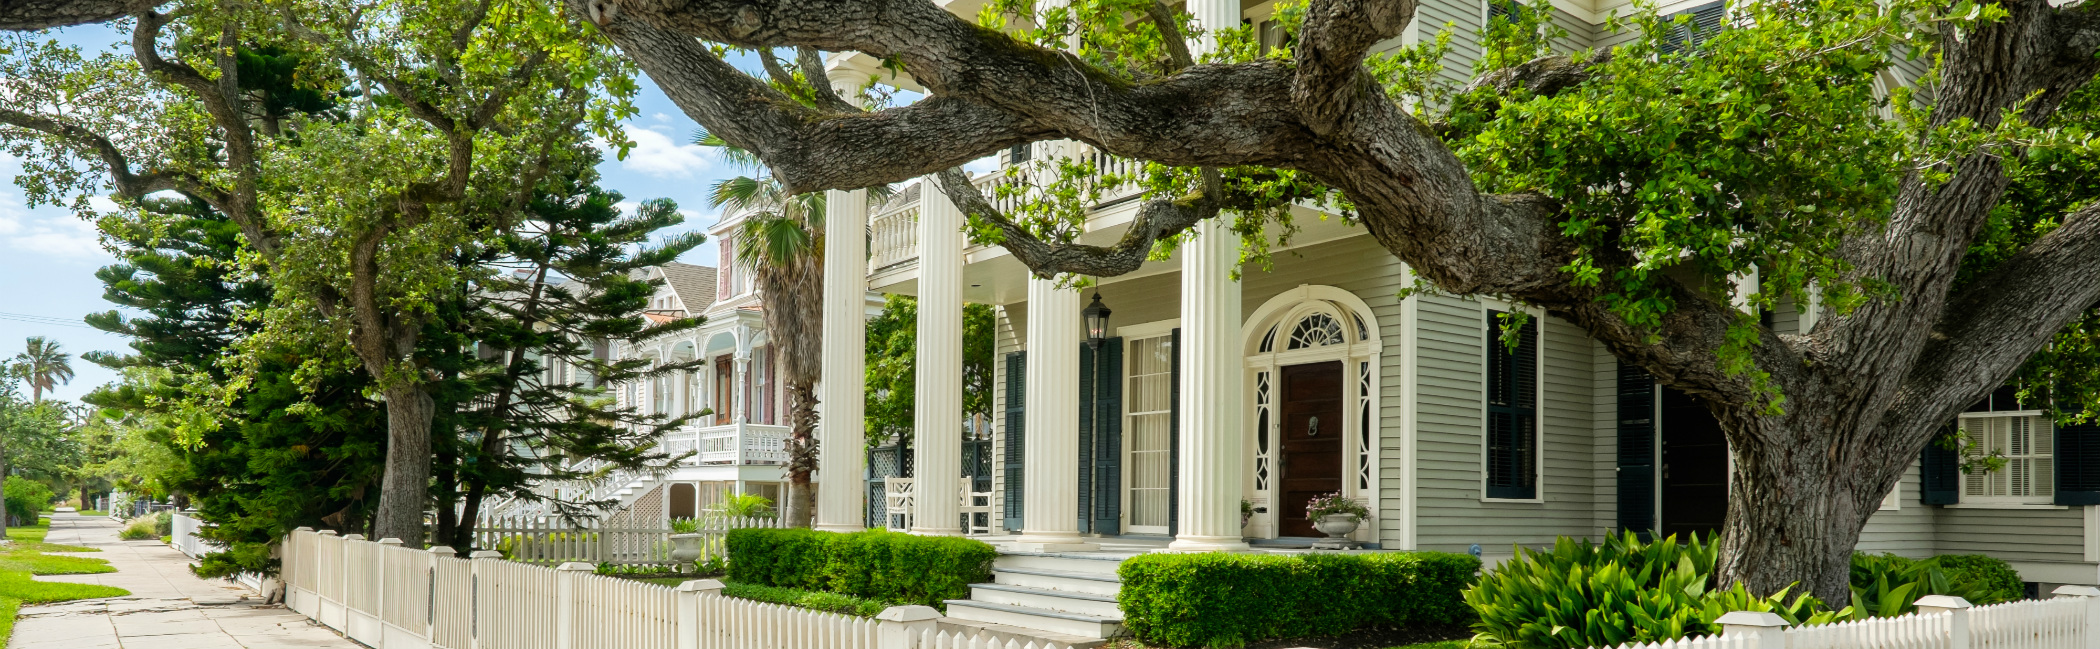 Homes Over 100 Years Old For Sale in San Antonio